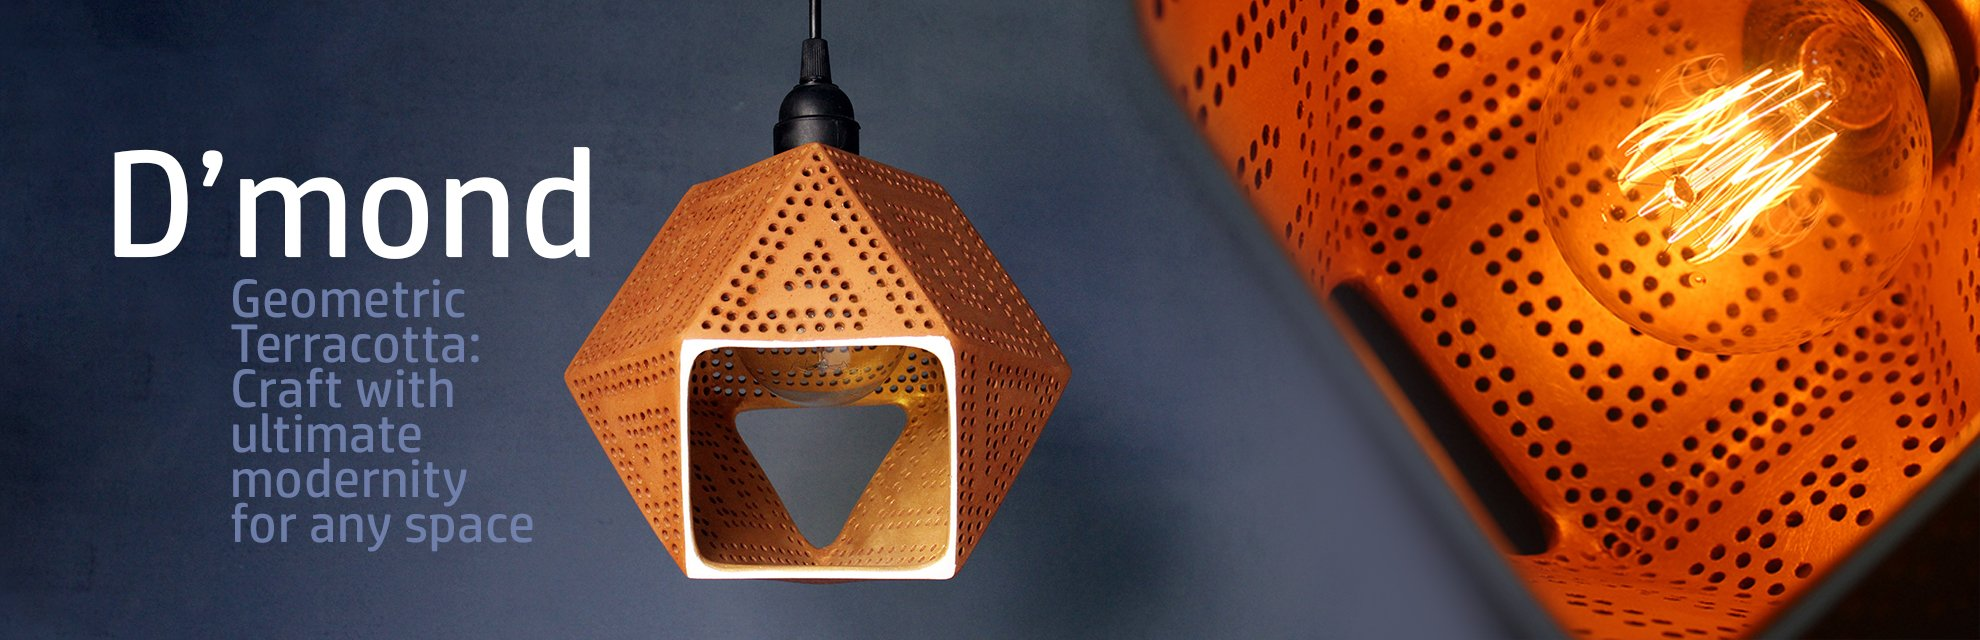 DMOND PENDANT LIGHTS